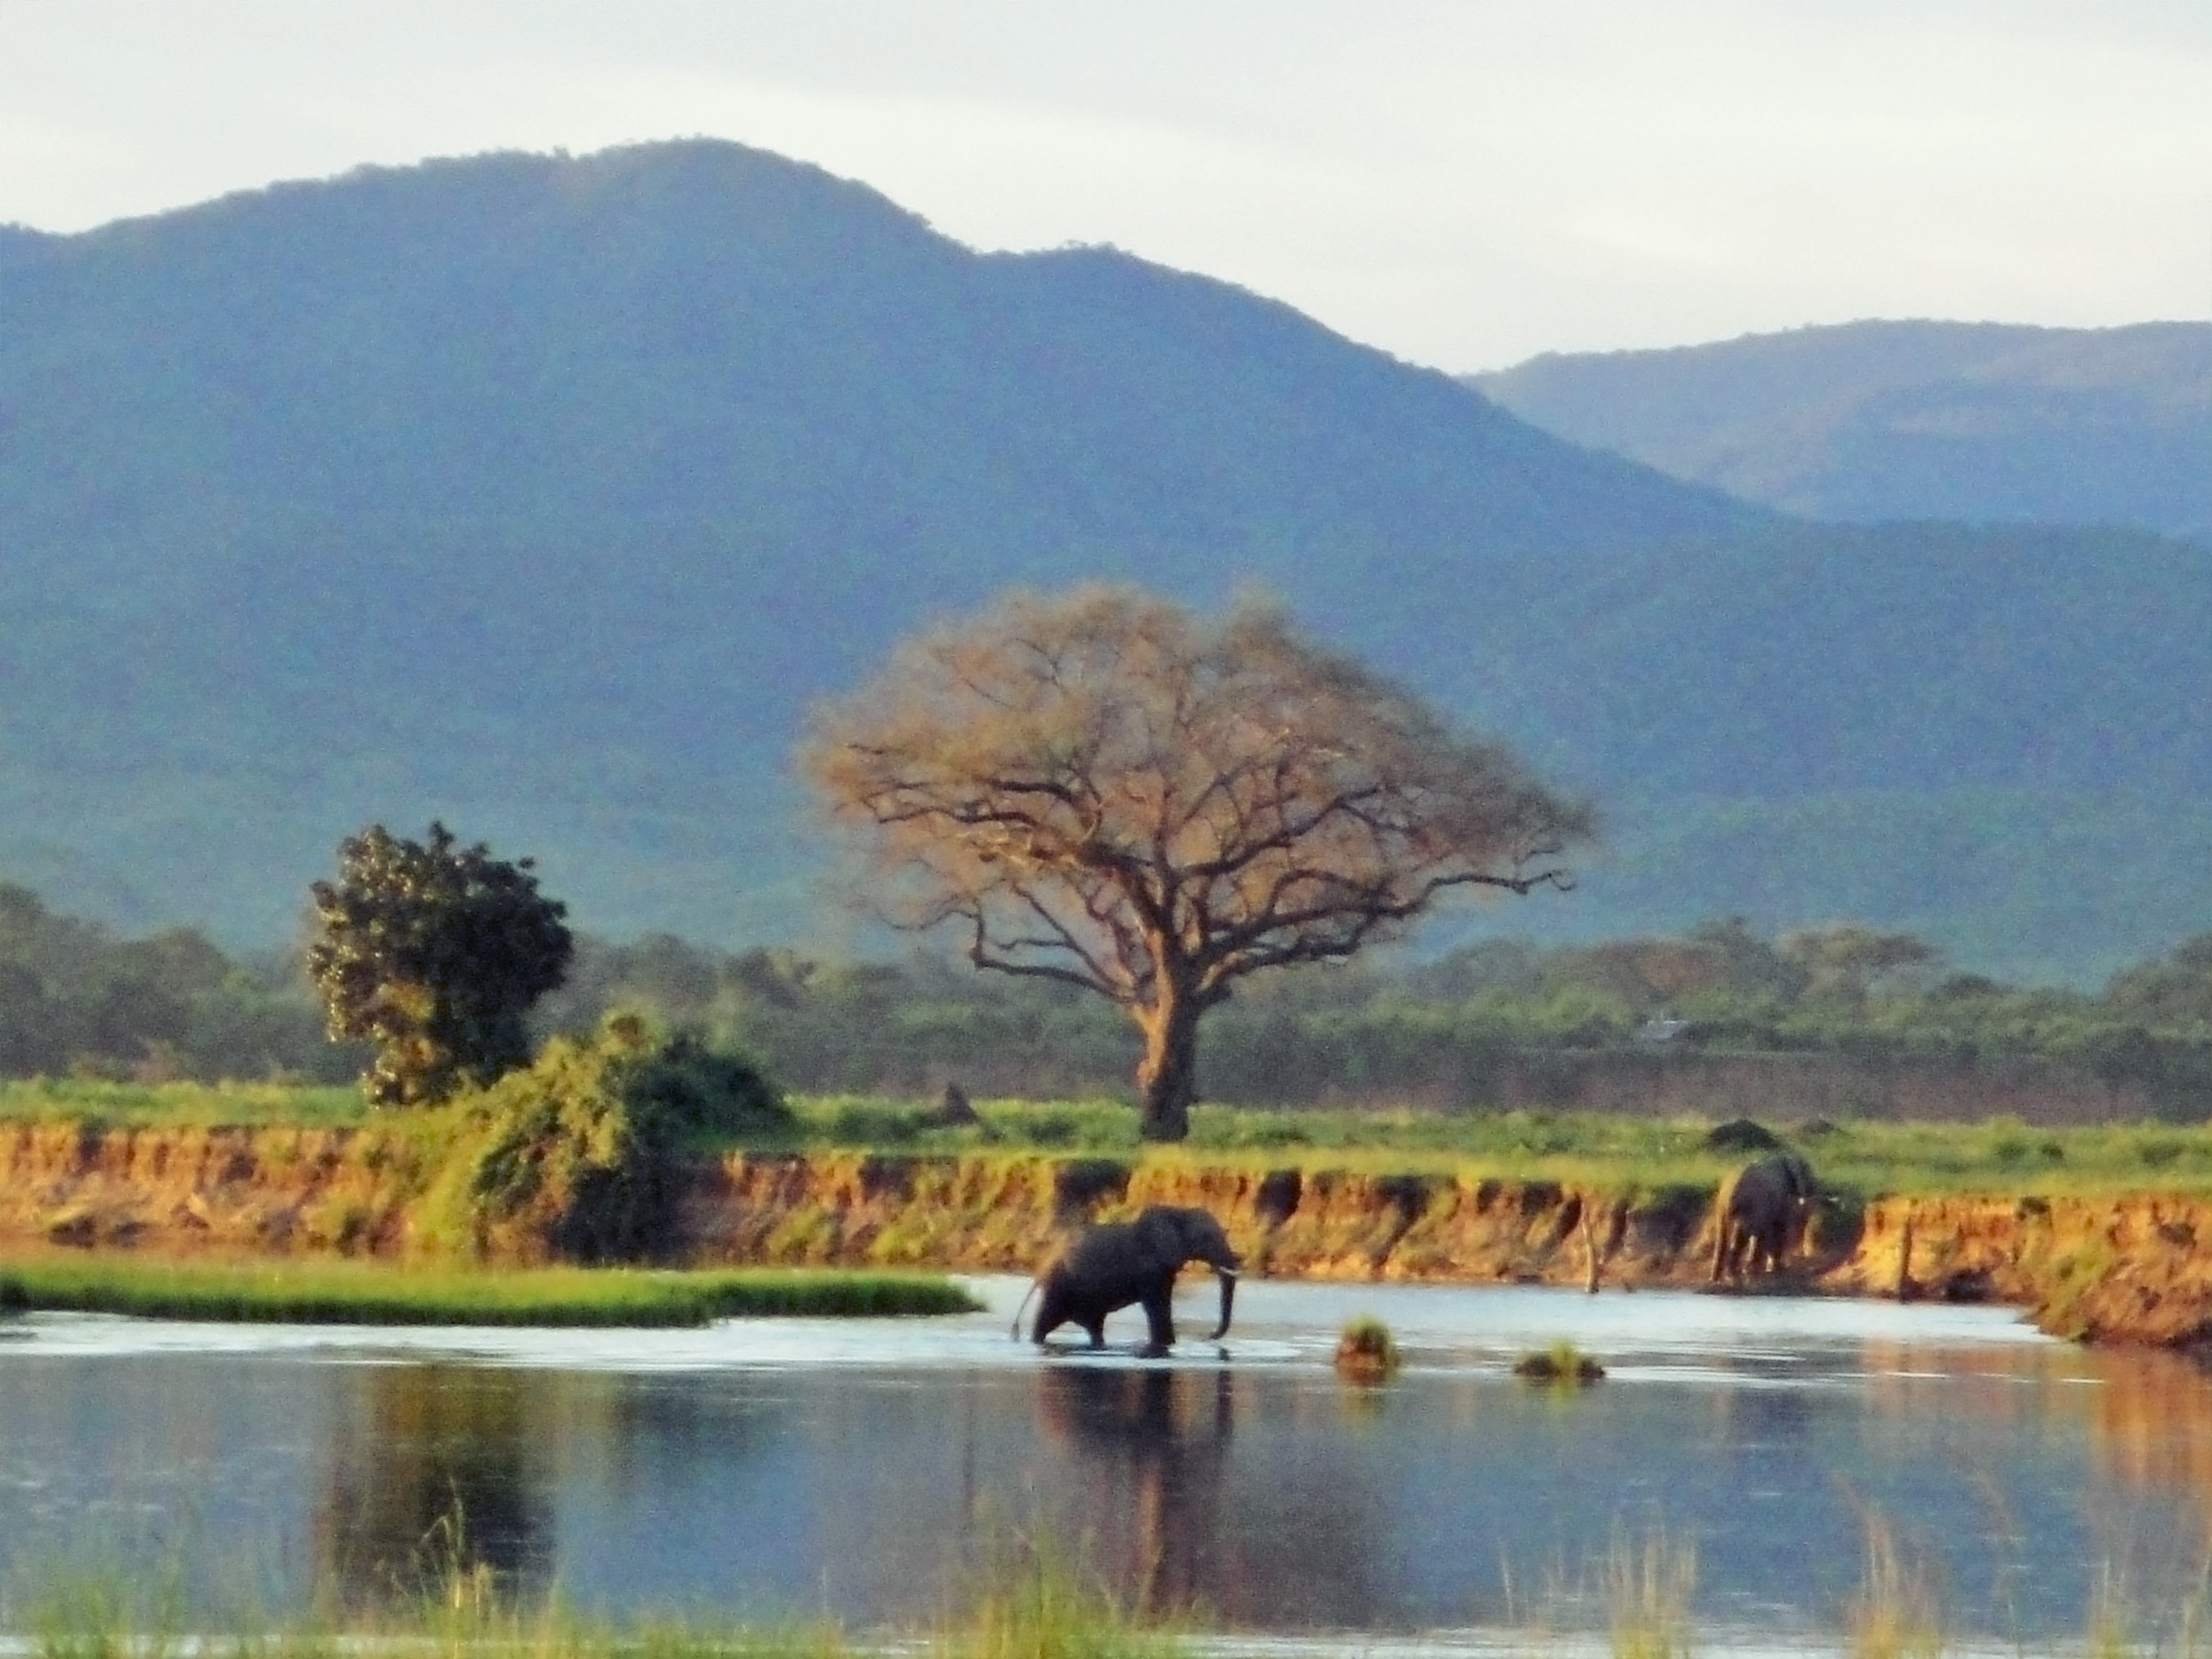 Mana Pools Zimbabwe